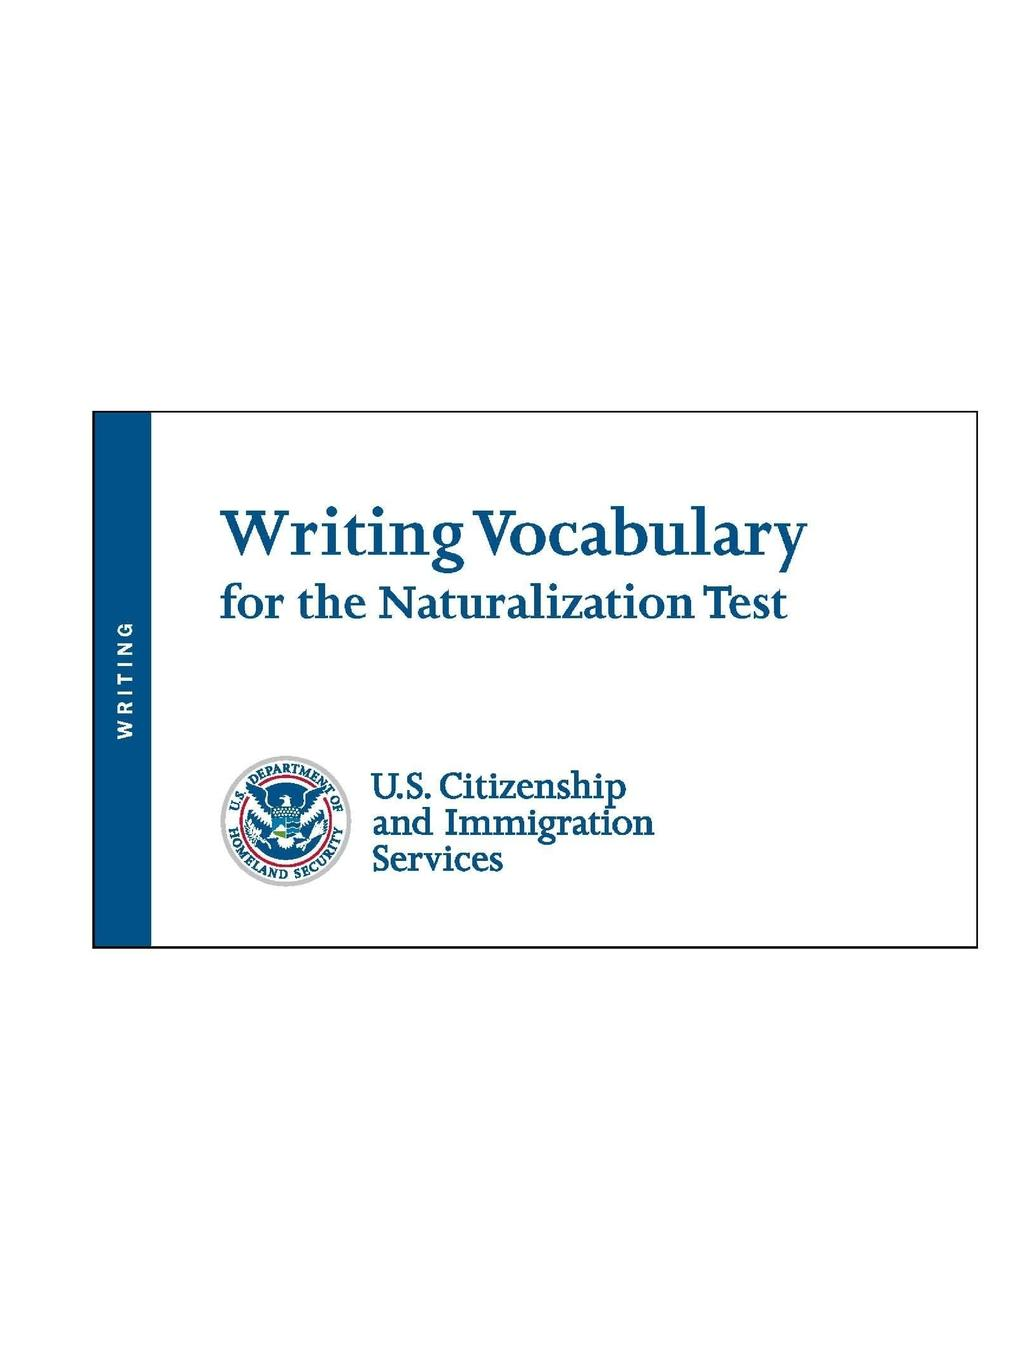 U.S. Citizenship and Immigratio (USCIS) Writing Vocabulary for the Naturalization Test the writing system